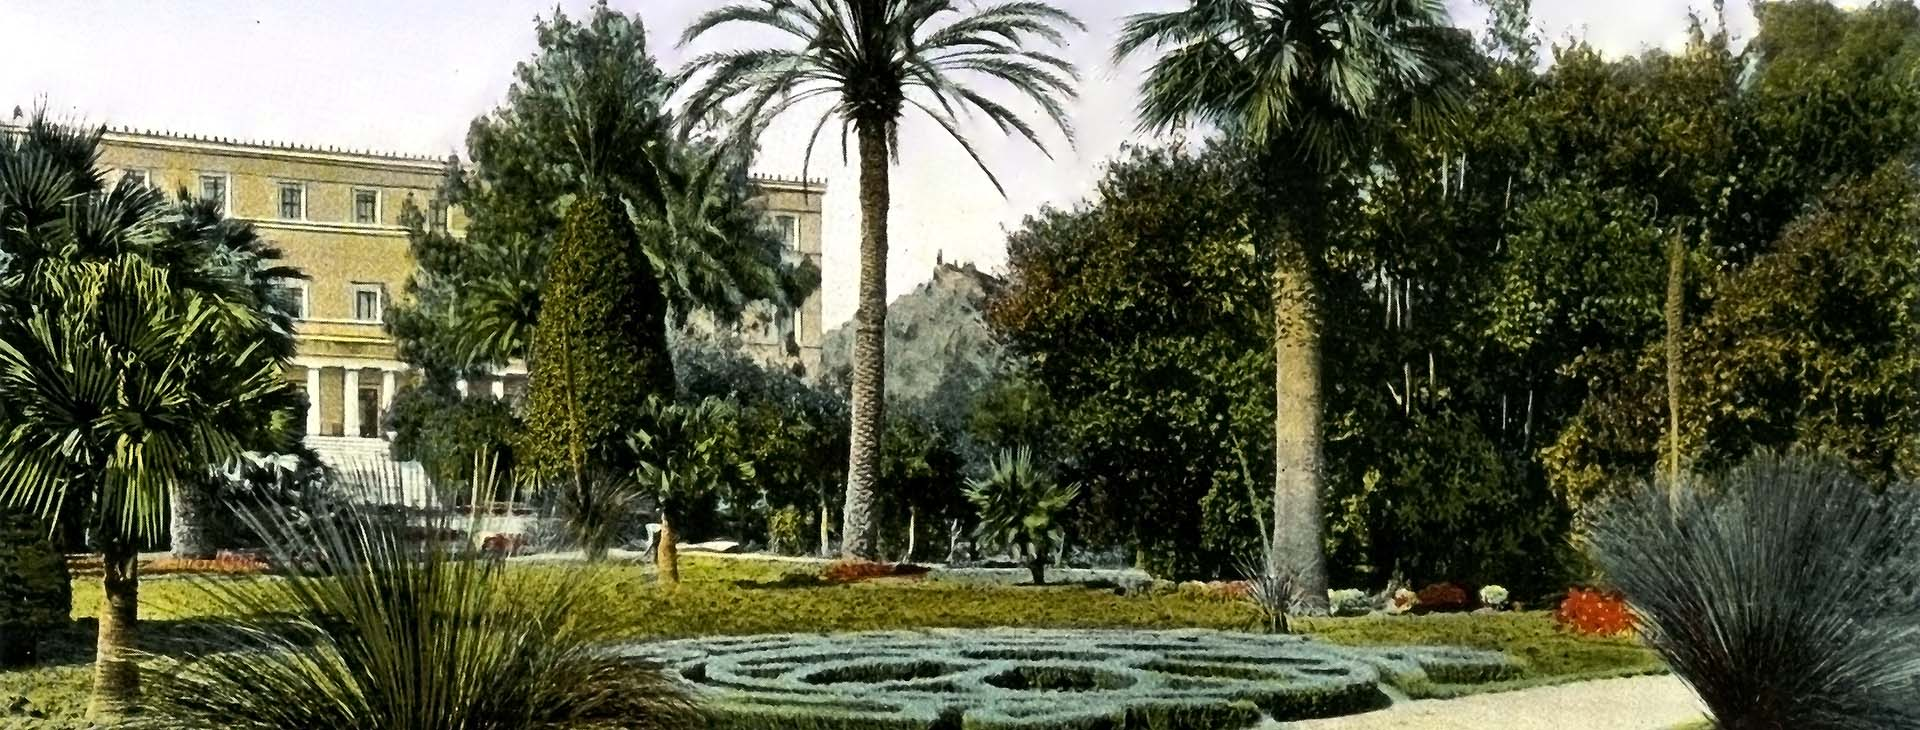 National Gardens, Athens